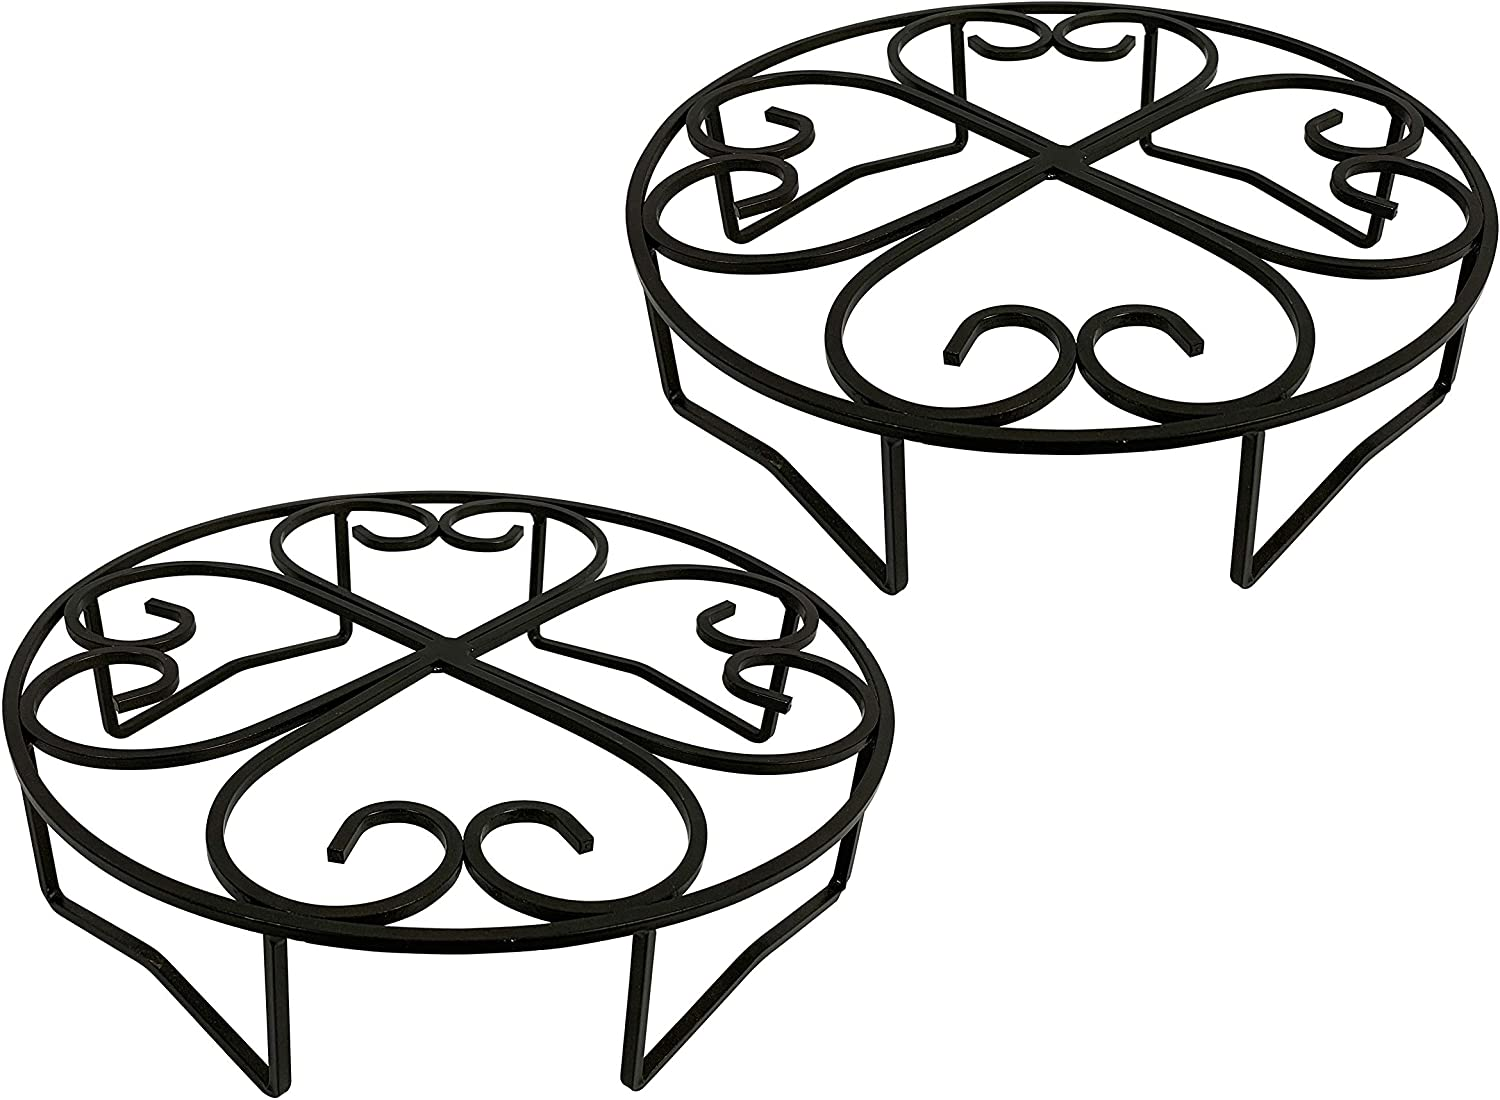 Cocoyard 10 Inch Metal Plant Stand, Set of 2, Heavy Duty Flower Pot Holder Rack for Indoor Outdoor, Metal Rustproof Iron Planter Pot Trivet, Great Gift for Plant Lovers or Any Occasion